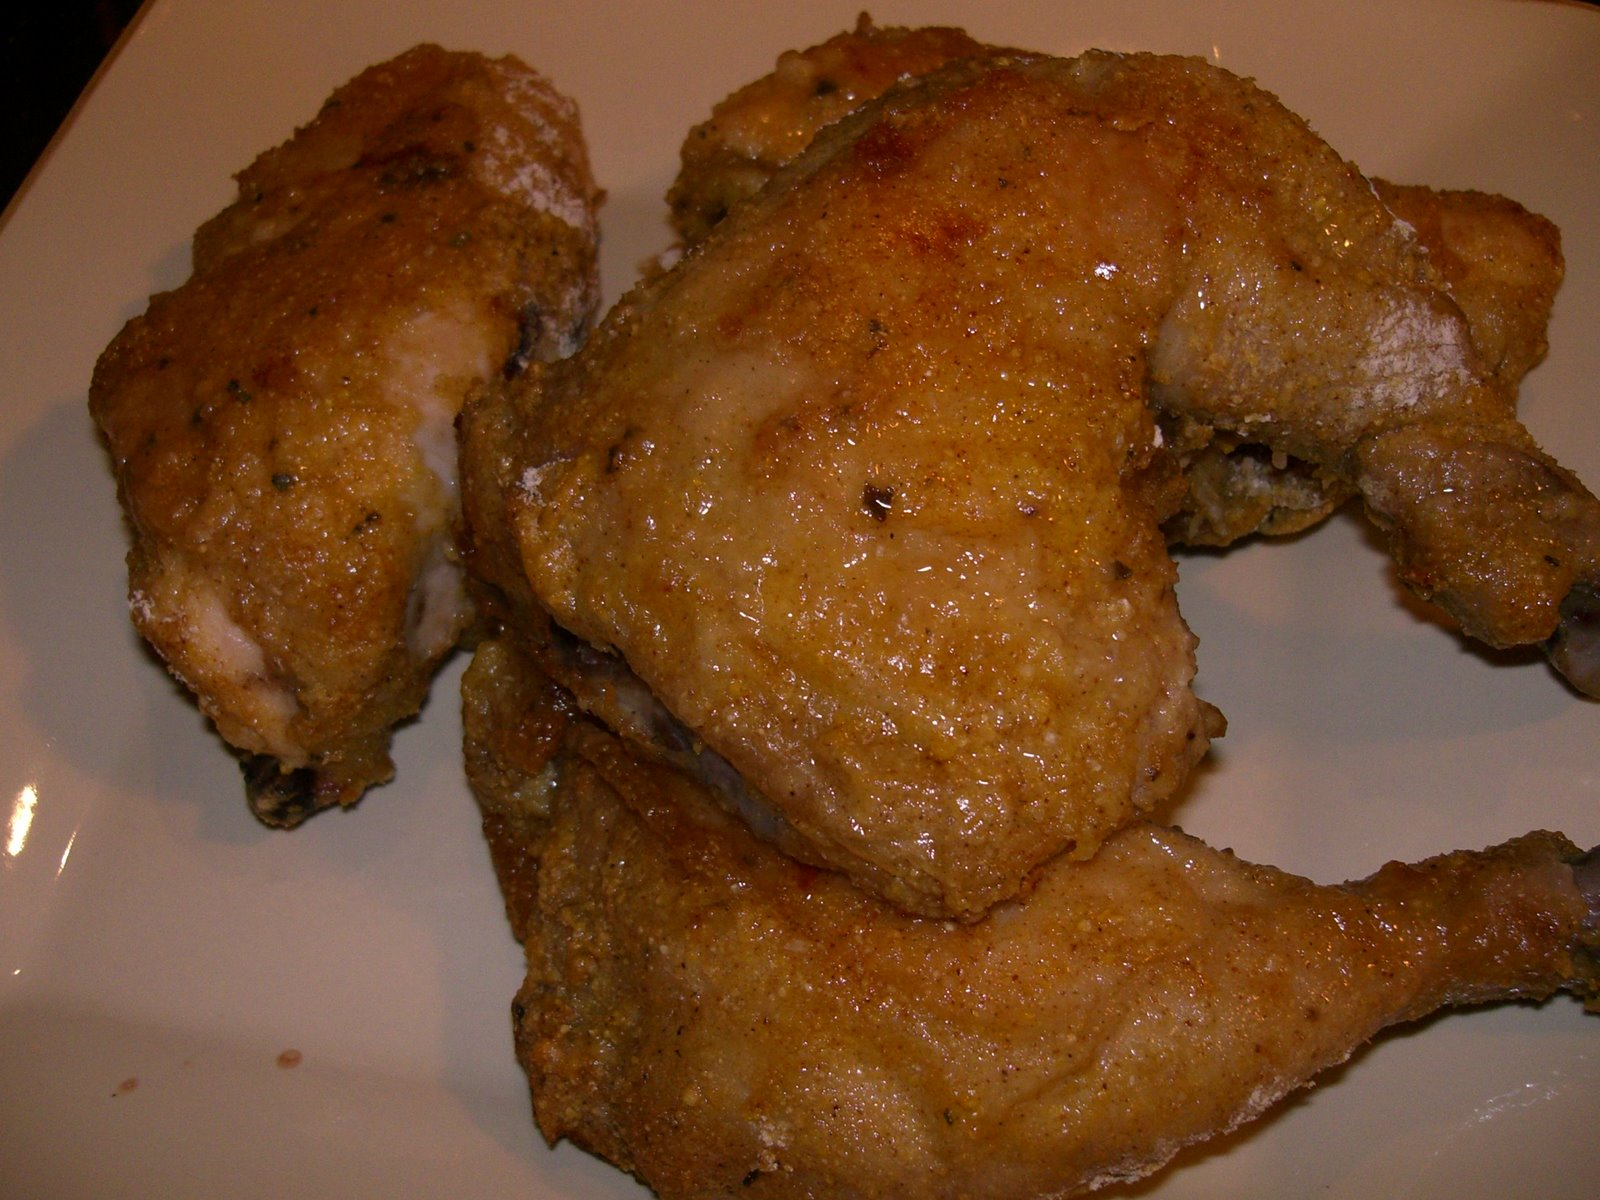 ... ate one of the best pieces of chicken of my life, if not the best